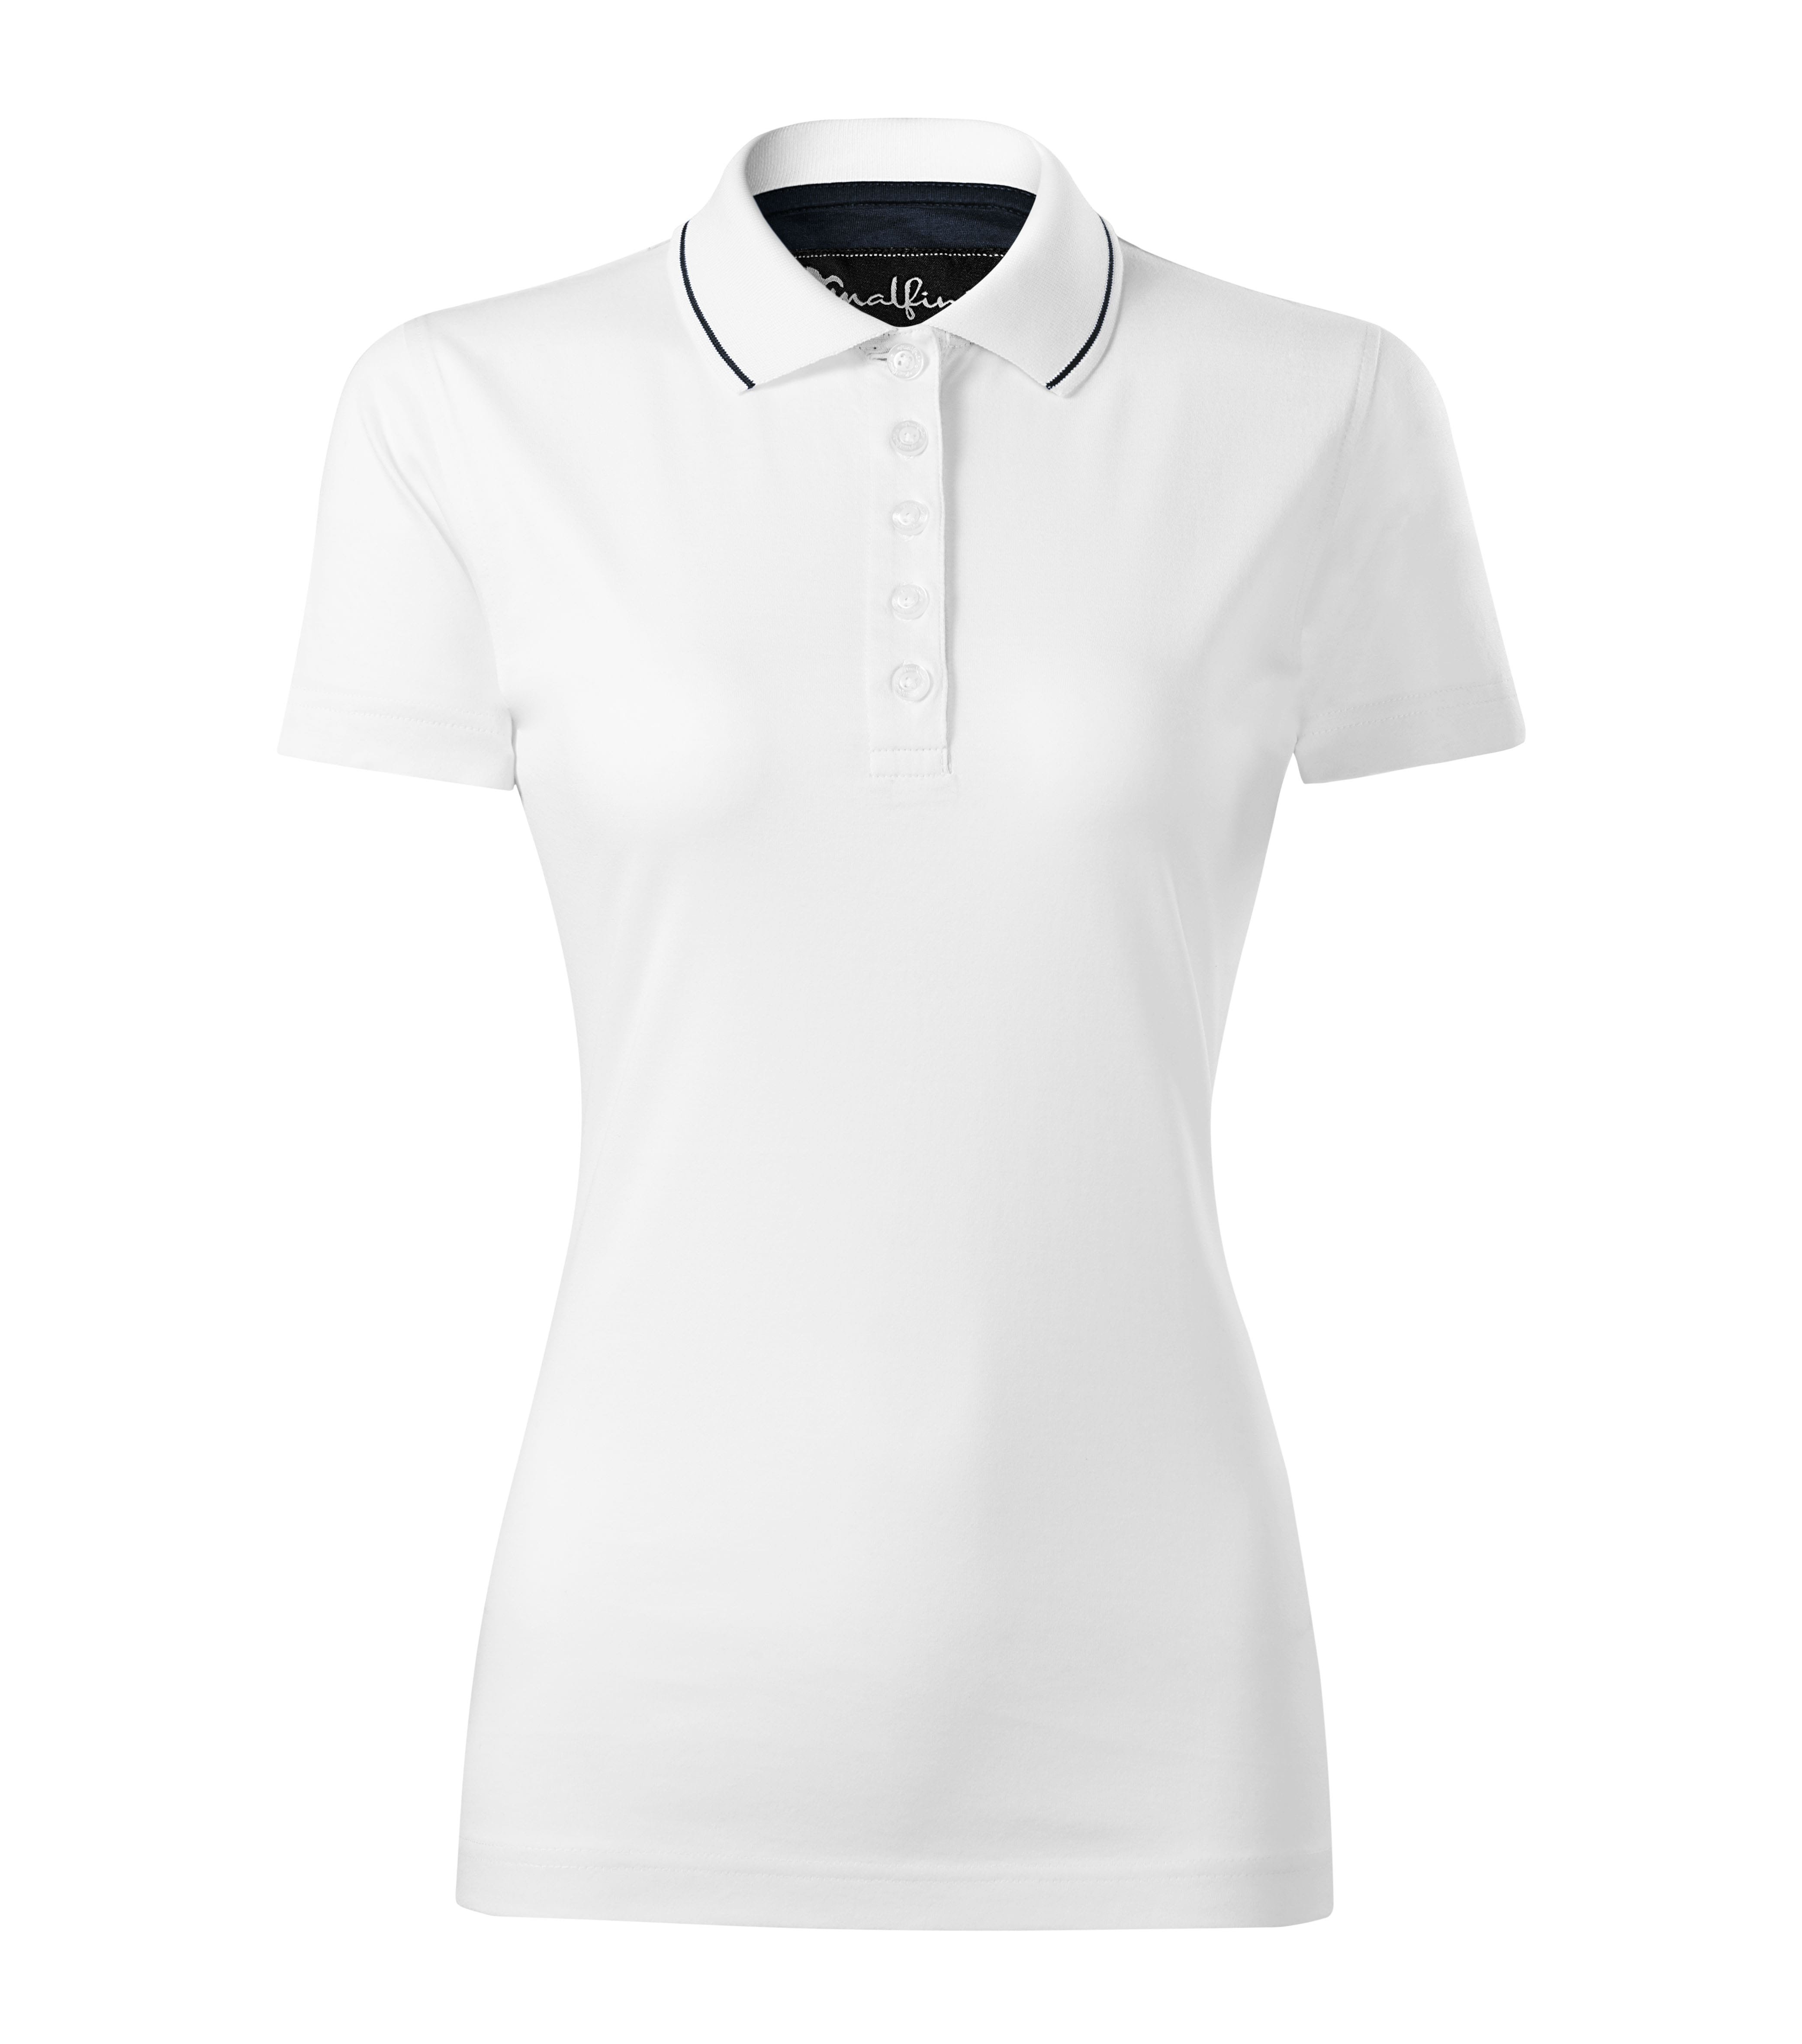 Emboidered Promotional White Ladies Polo Shirts 269 - www.ontimeprint.co.uk